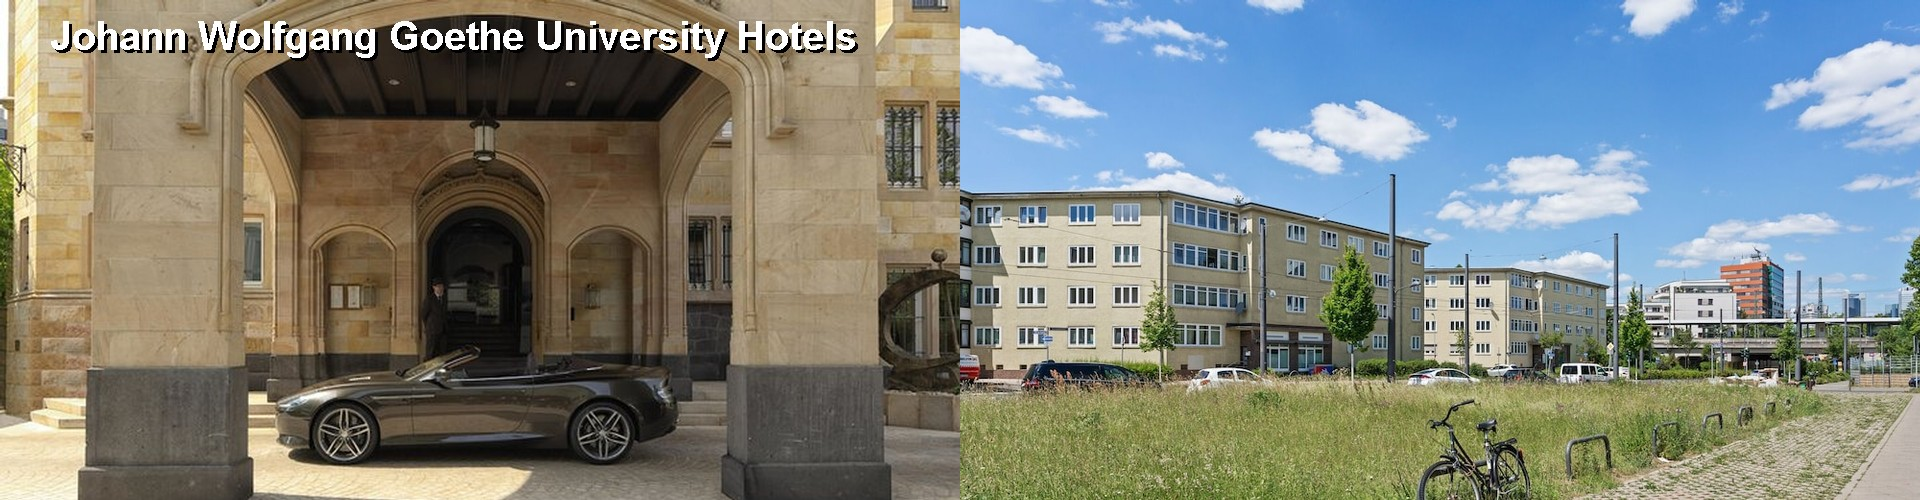 5 Best Hotels near Johann Wolfgang Goethe University